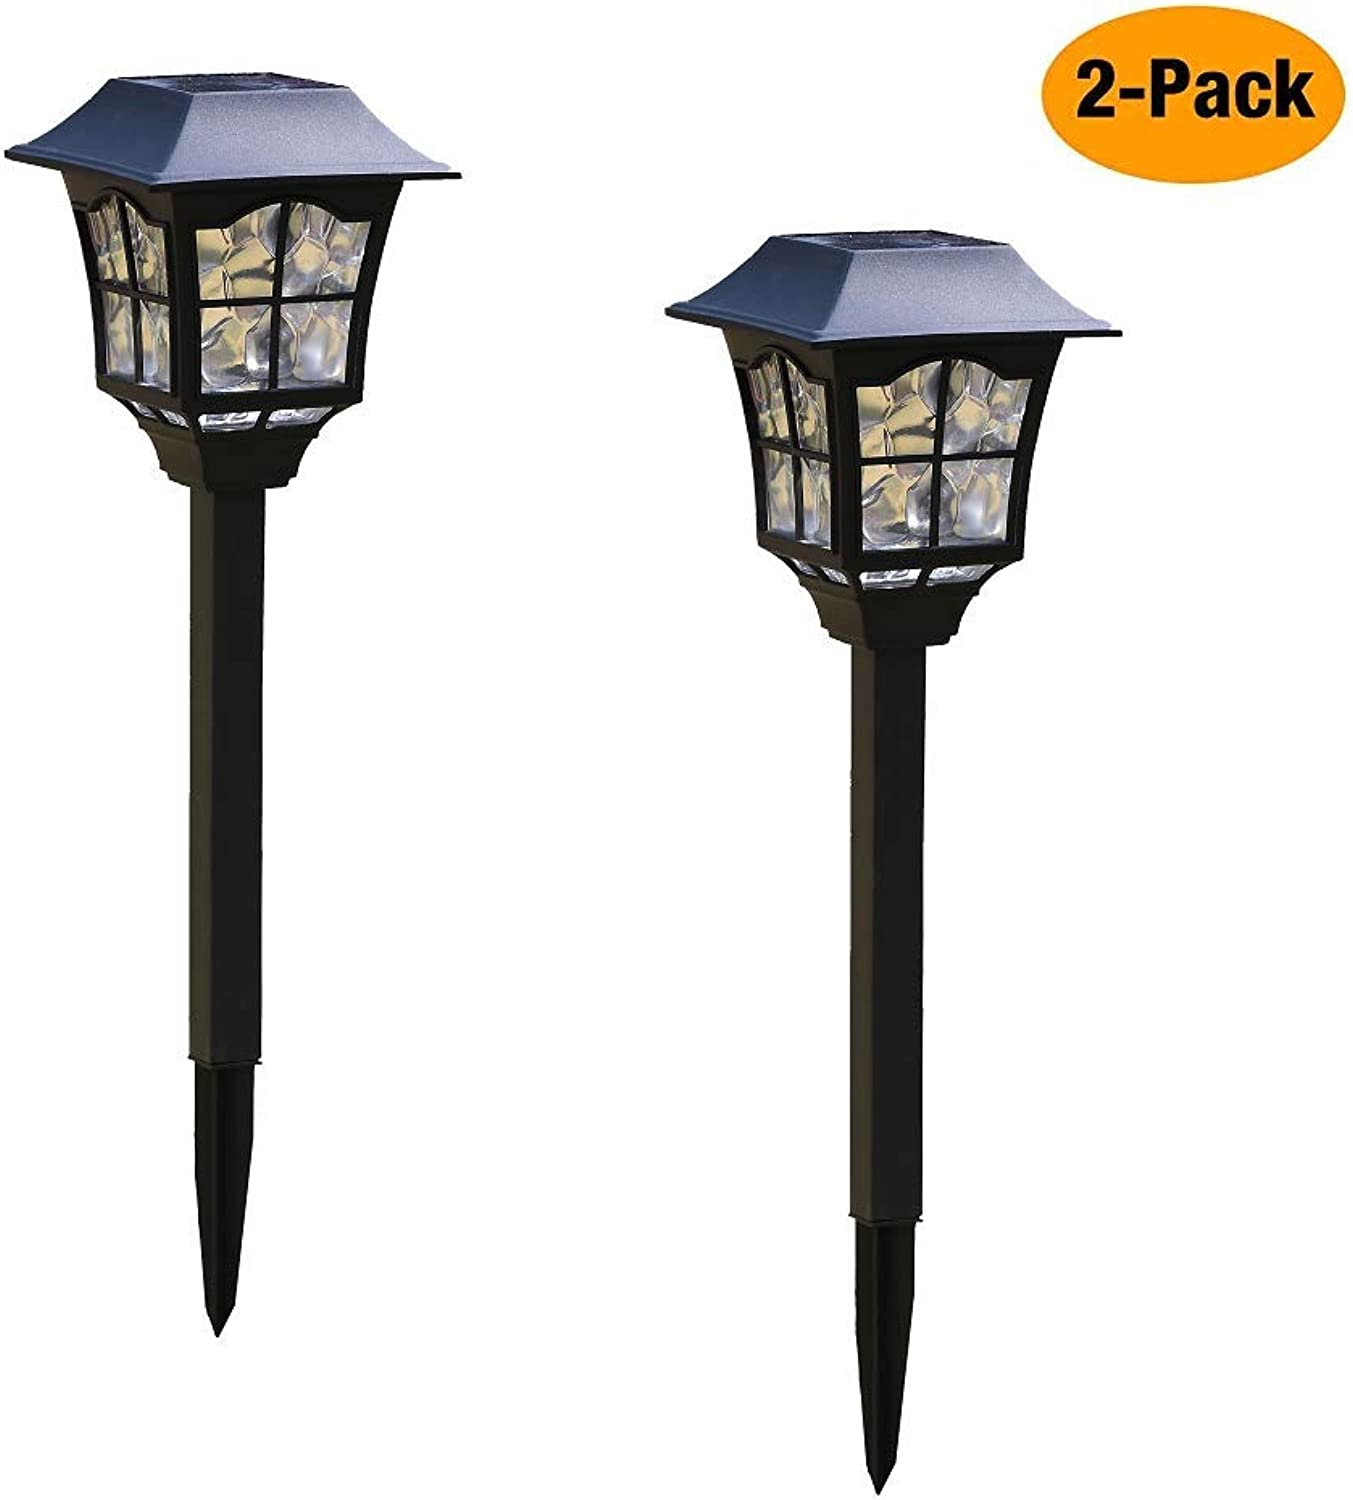 Sunpo Solar Pathway Lights Outdoor or Solar Lights Outdoor or Solar Garden Lights or Solar Landscape Lights or Solar Lights for Yard Patio Walkway Driveway Lawn dcor (2)